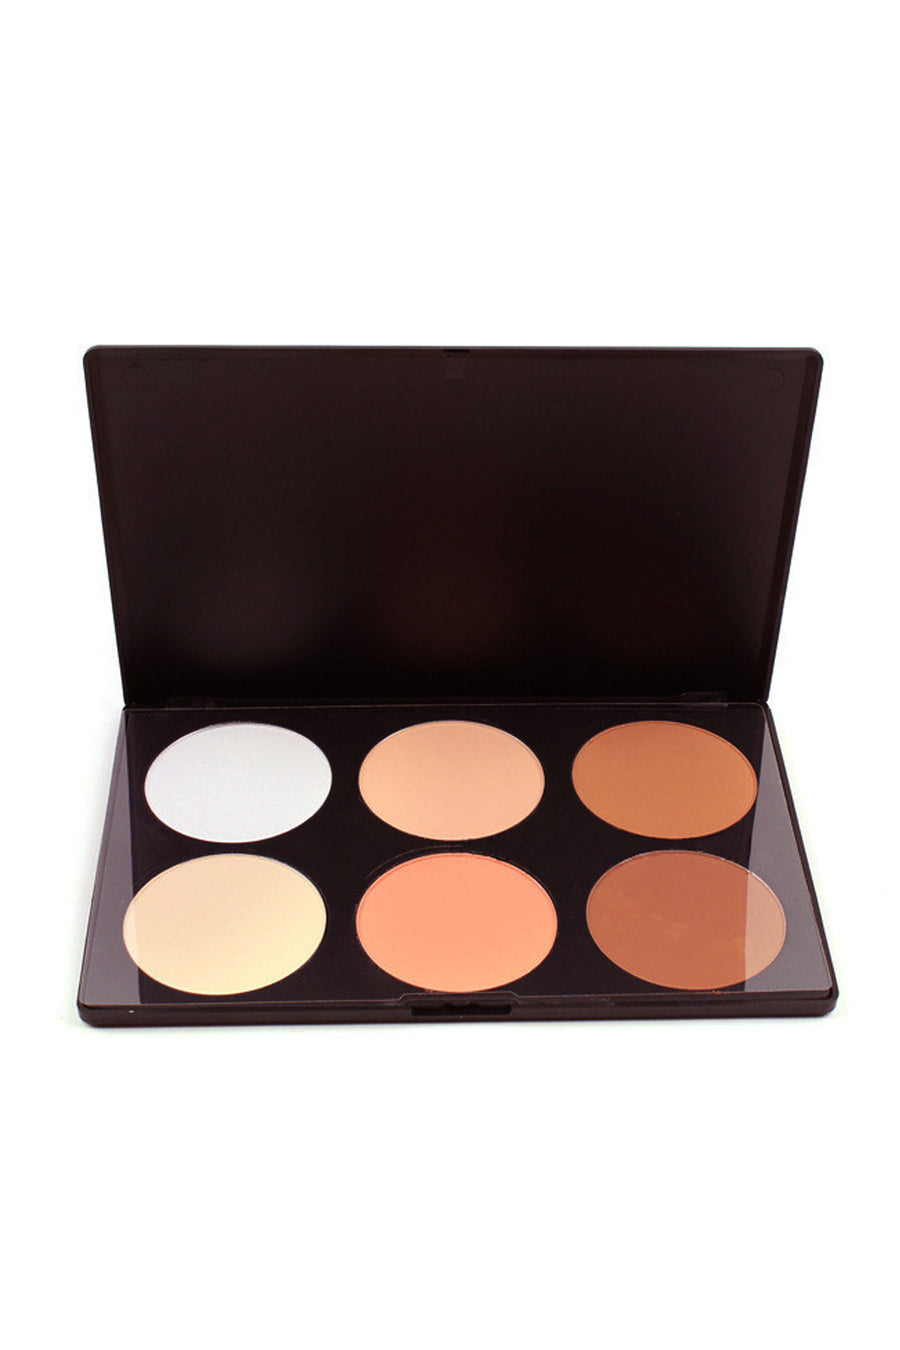 6 Color Powder Contour Palette